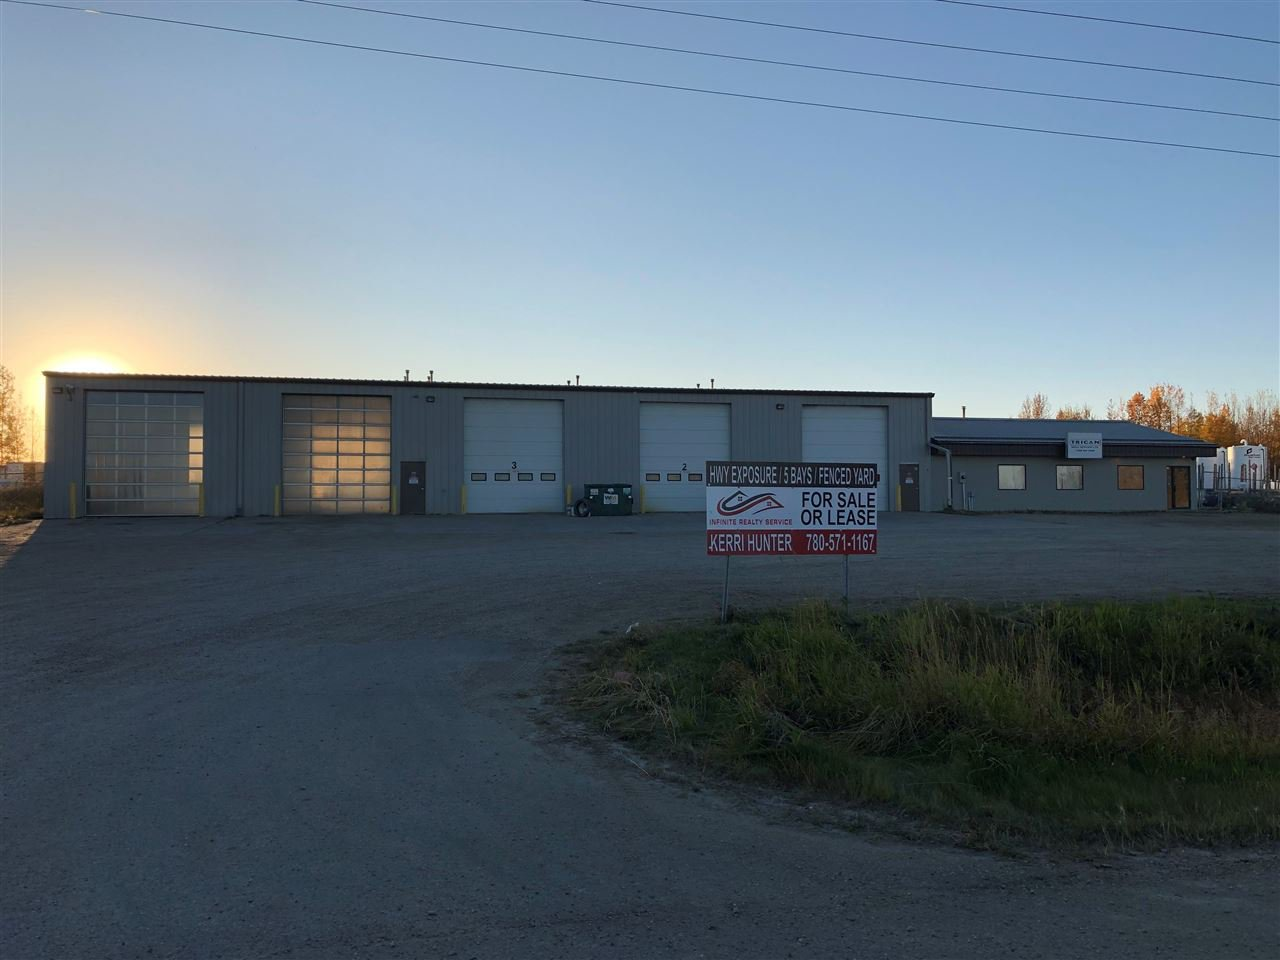 Main Photo: 4102 62 Street: Drayton Valley Industrial for sale : MLS®# E4216105